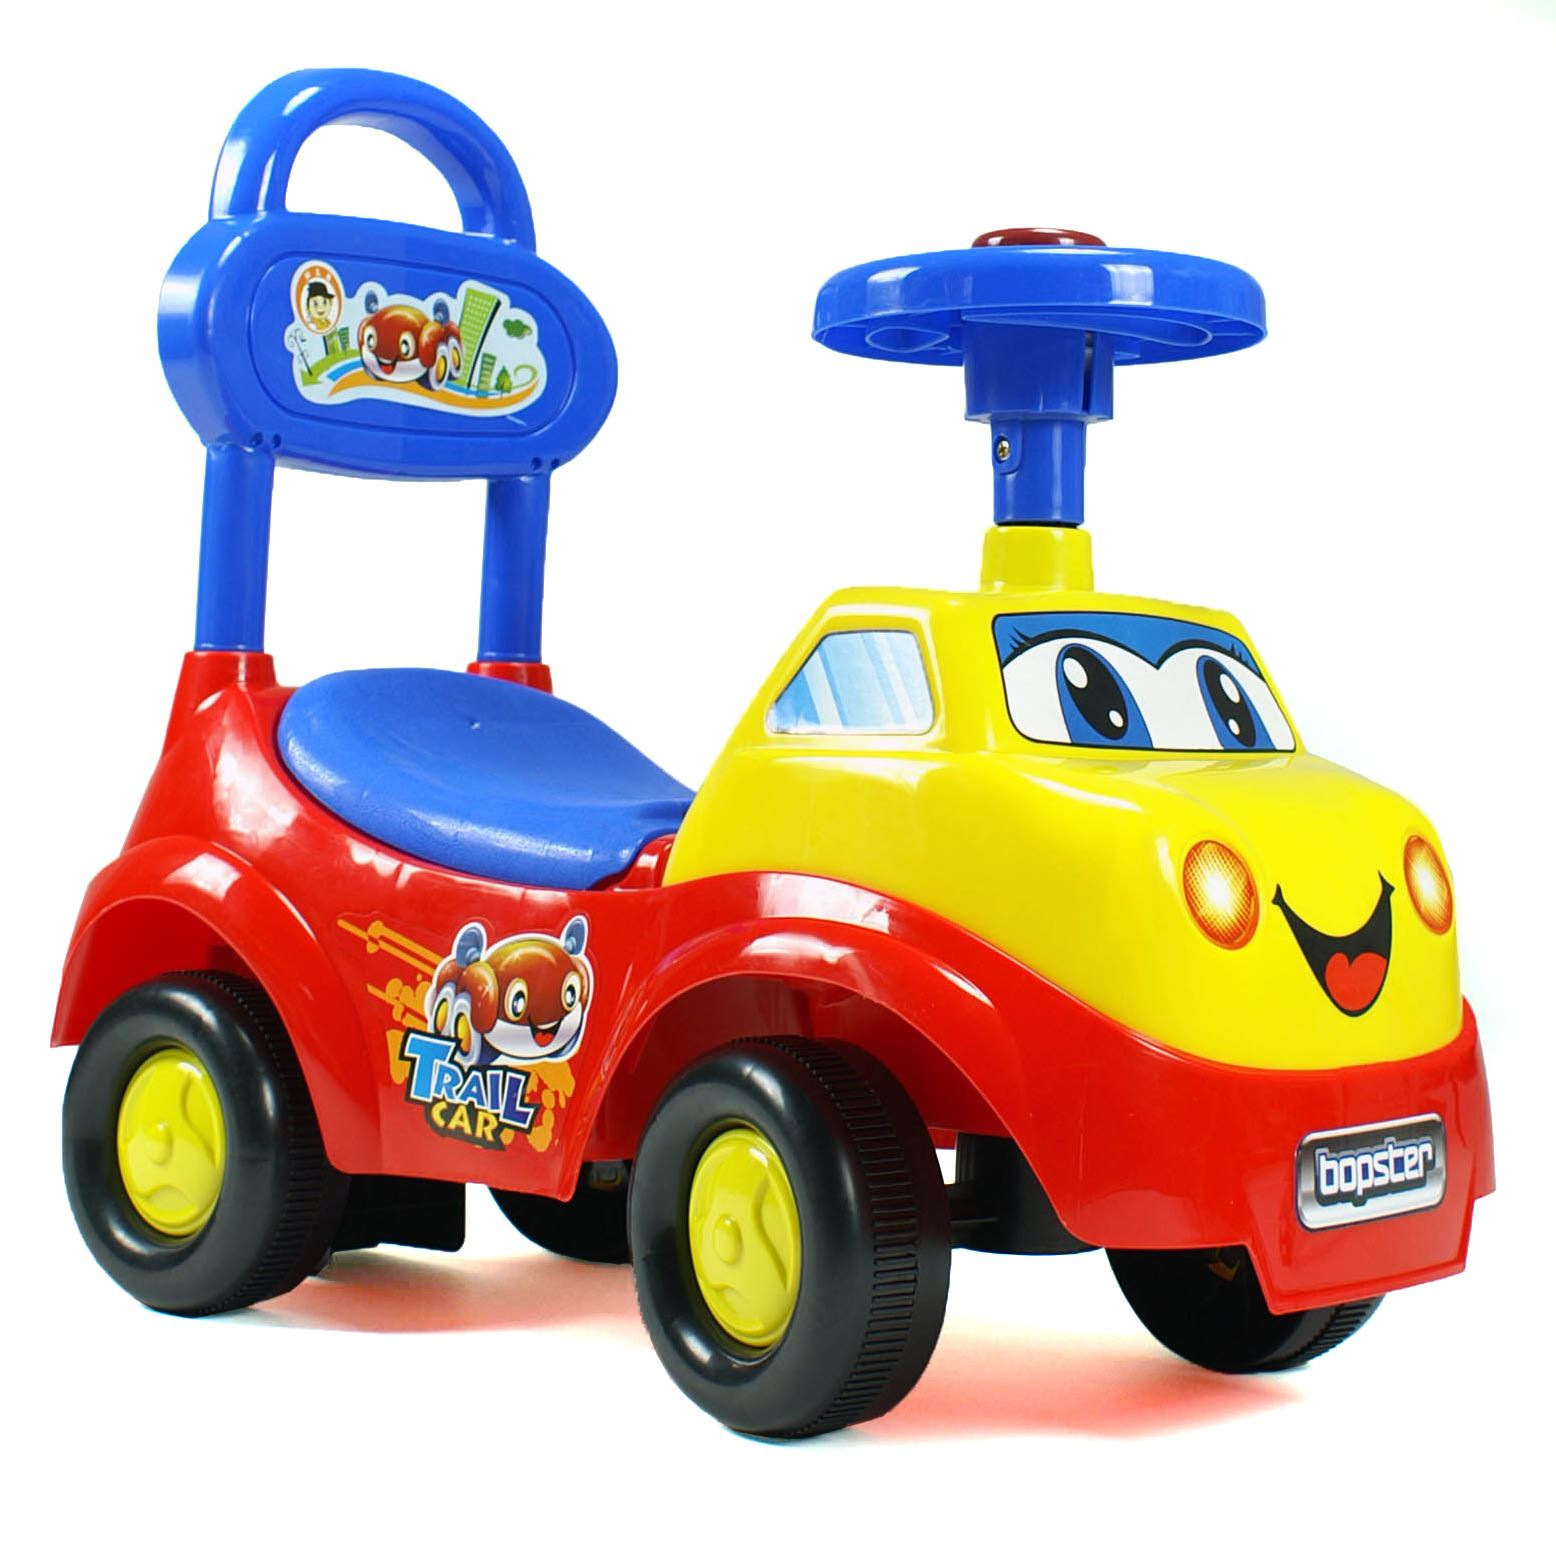 baby toddlers ride on push along car truck childrens kids toy new ebay. Black Bedroom Furniture Sets. Home Design Ideas